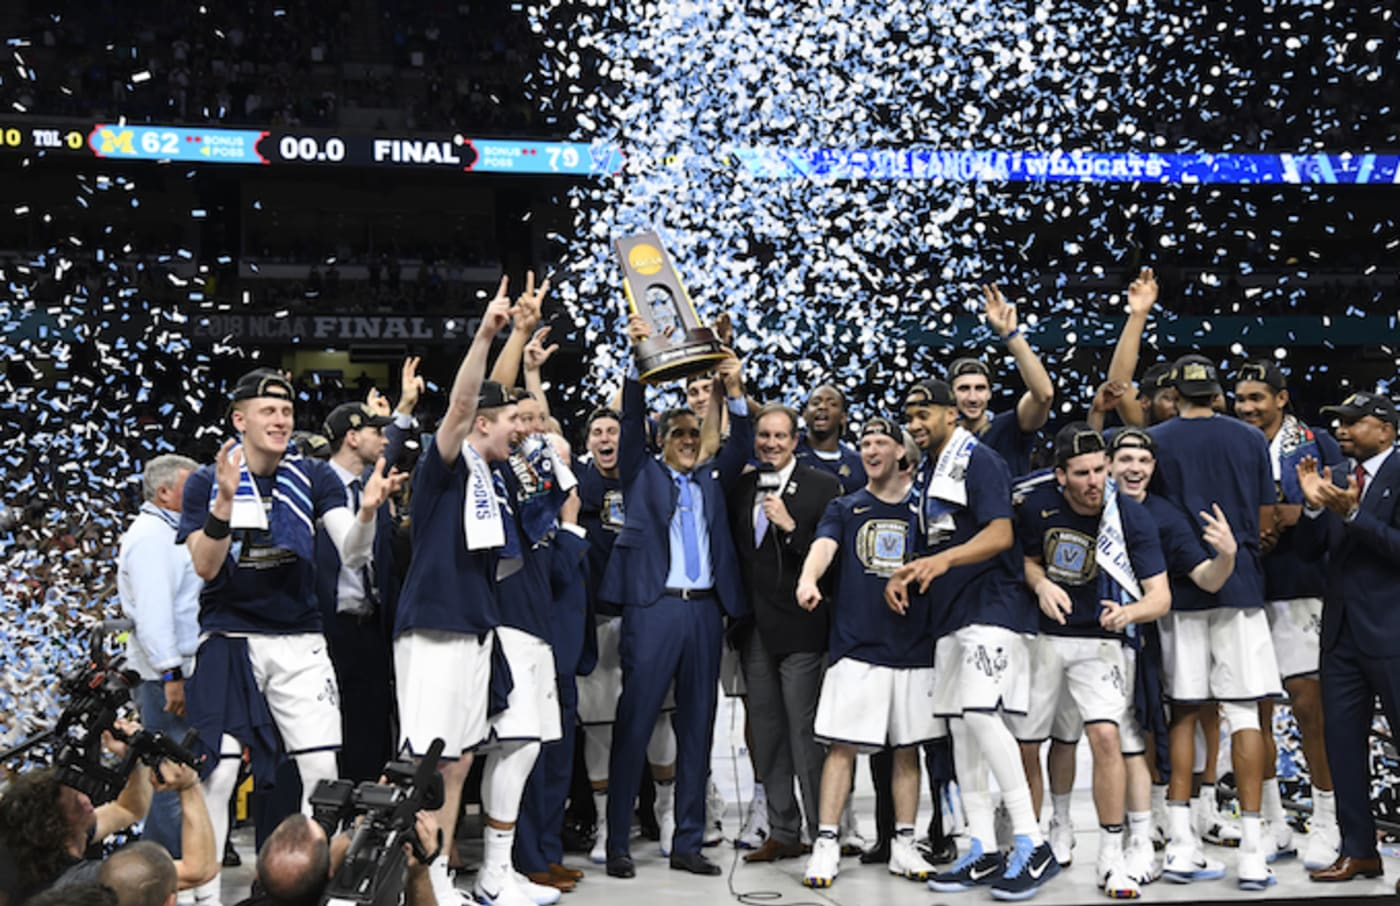 Villanova coach Jay Wright victorious, holding up National Championship trophy with players.